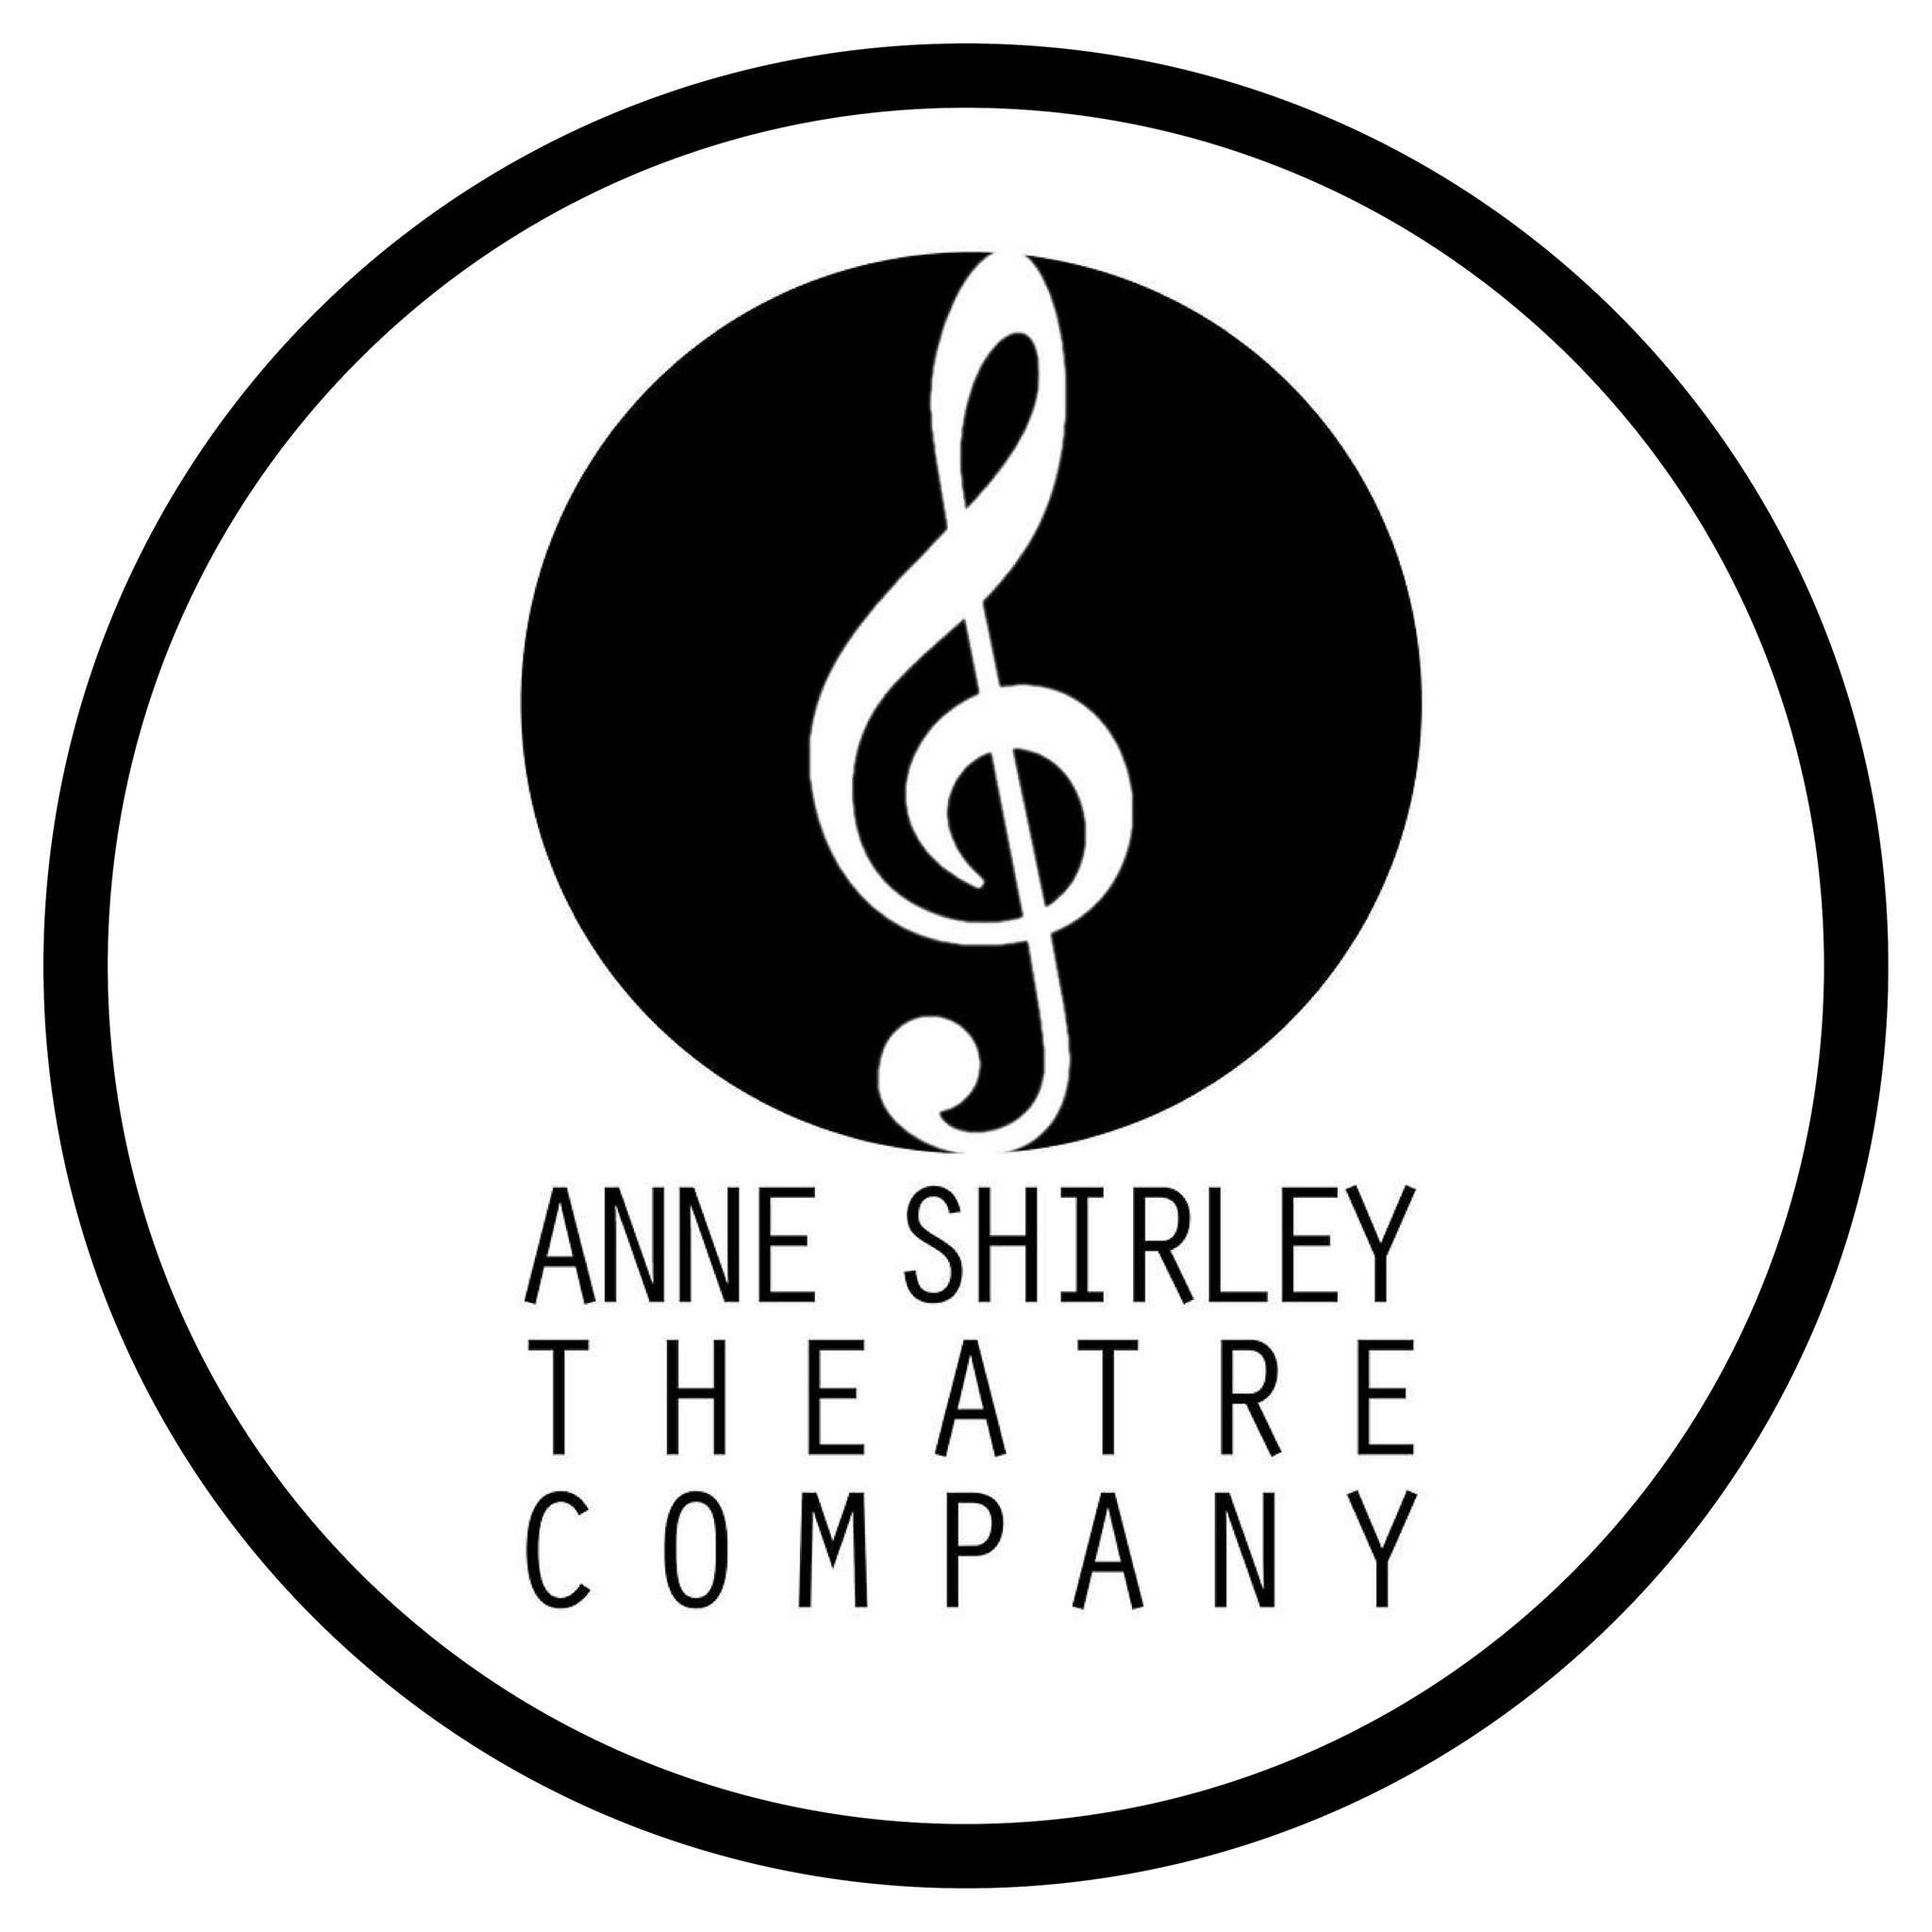 Anne Shirley Theatre Company Seeks Performers for 2019-2020 Productions